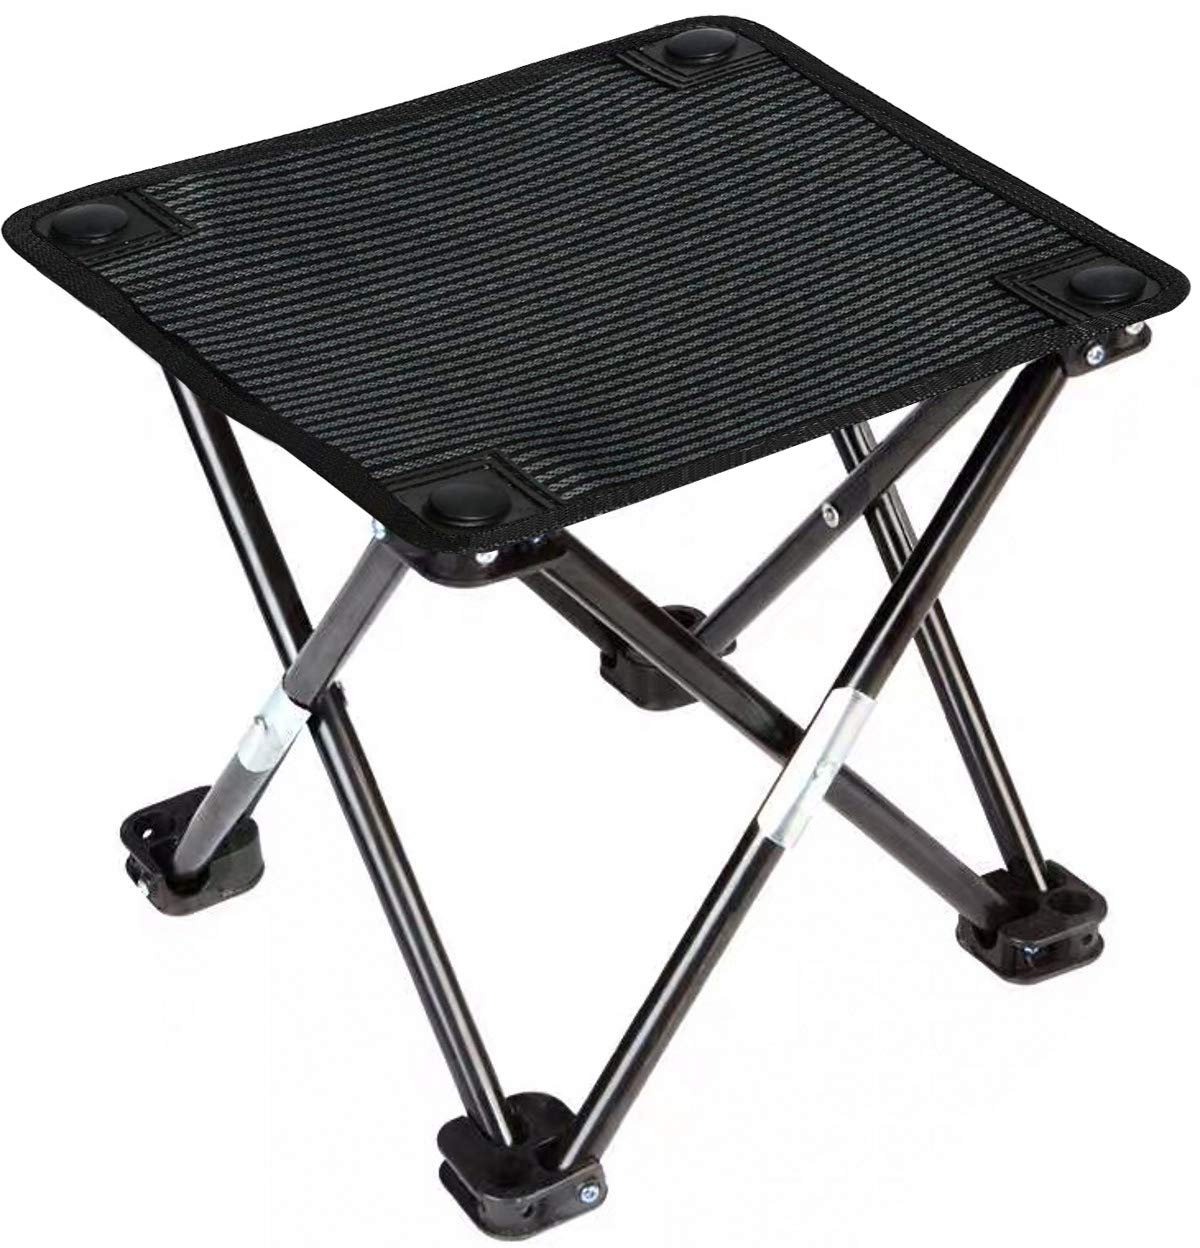 Vimi Portable Folding Camping Stool Ultralight Compact Camp Footrest Stools for Outdoor Fishing Hiking Backpacking Travelling Outdoor Little Stools (Black) by Vimihousewares